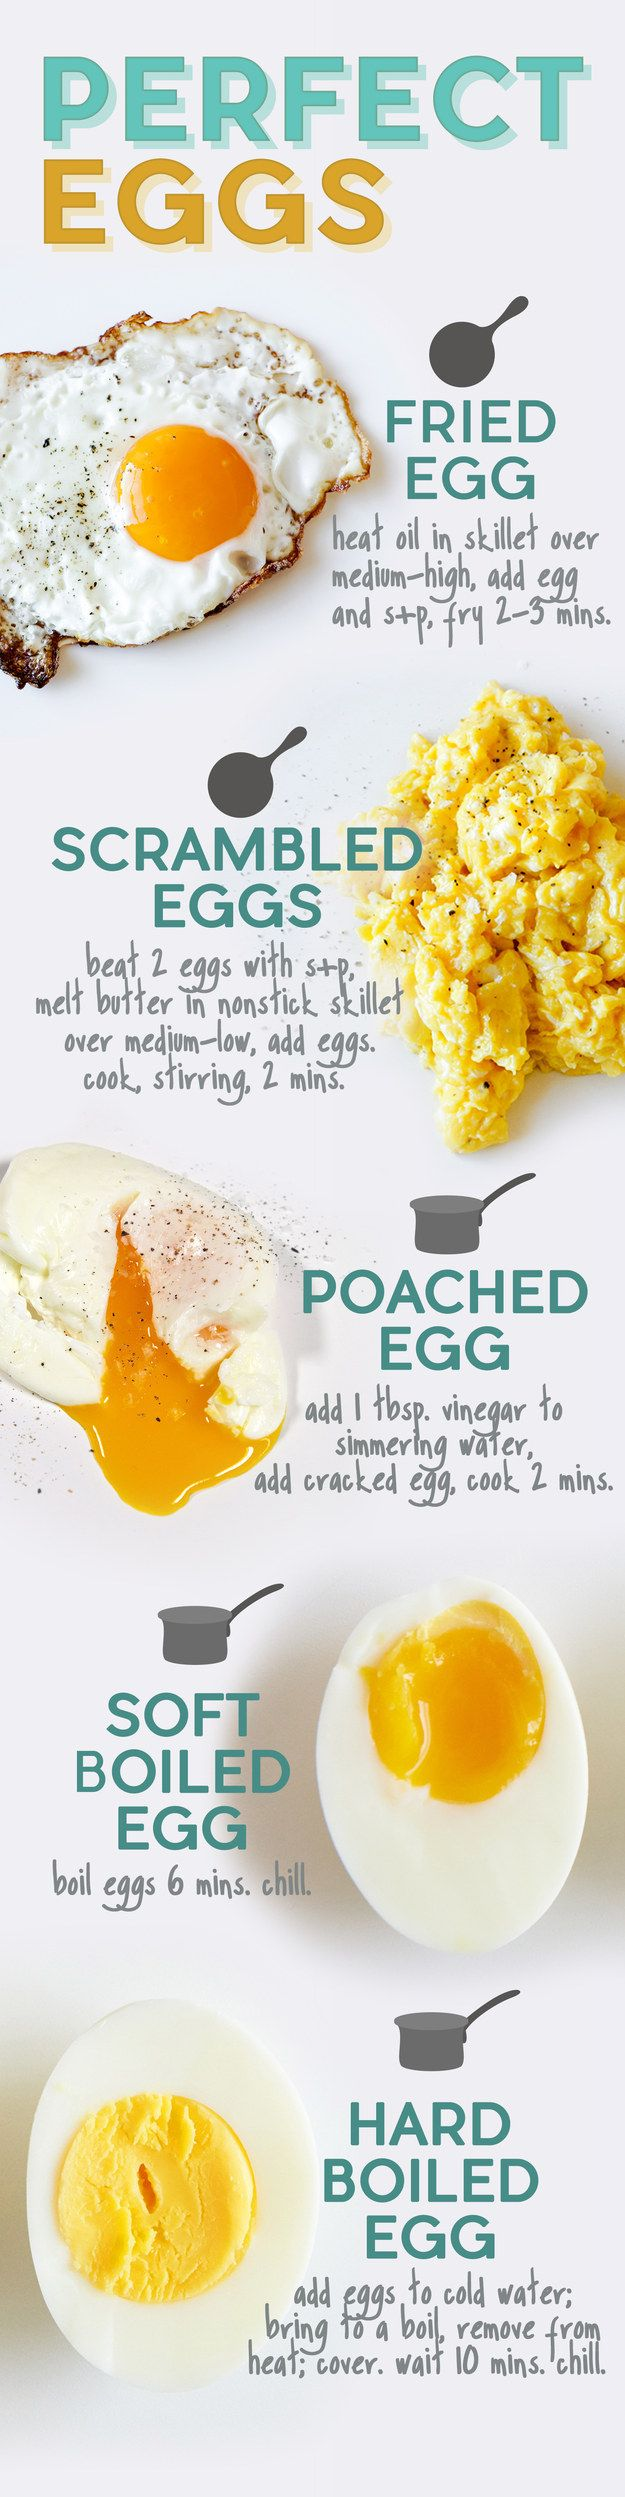 Fried, scrambled, boiled (hard and soft) and of course, POACHED.